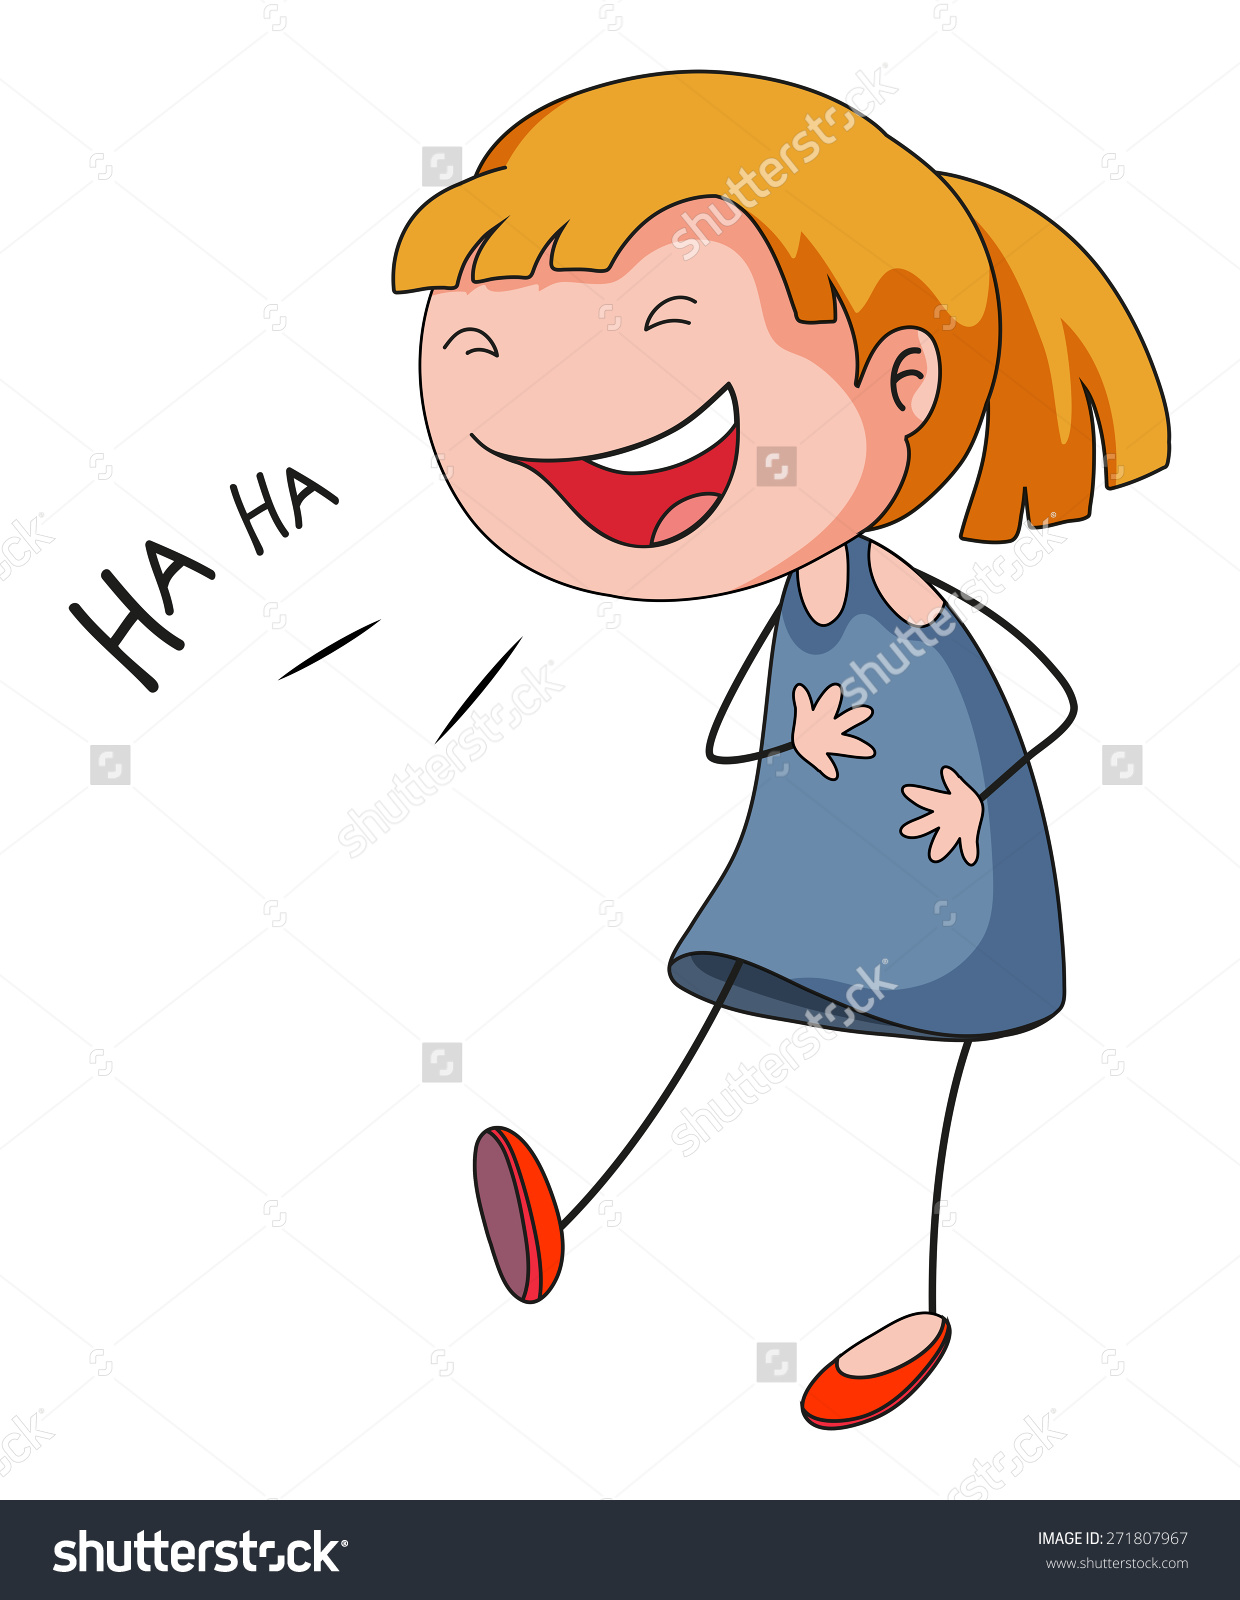 Laughing girl clipart svg transparent Laughing girl clipart - ClipartFest svg transparent